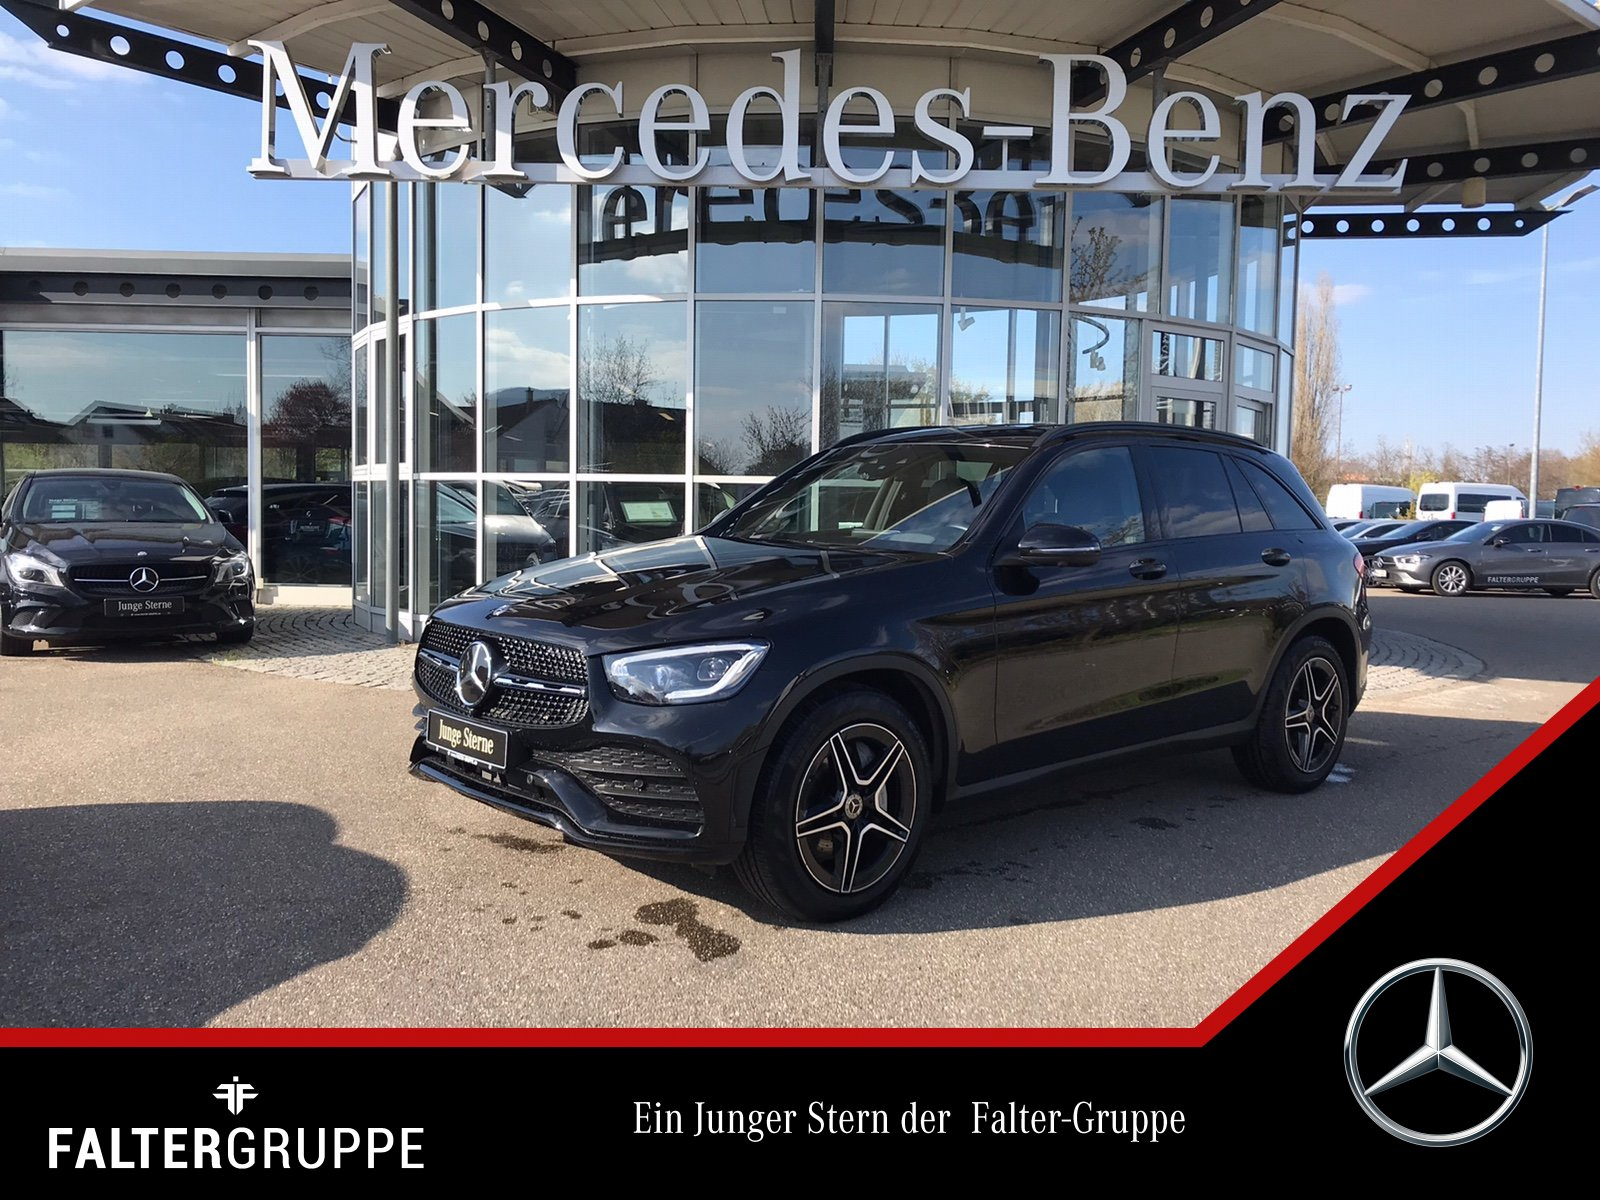 Mercedes-Benz GLC 400d AMG Night DISTR ABC HUD 360°MLED elHeck, Jahr 2019, Diesel